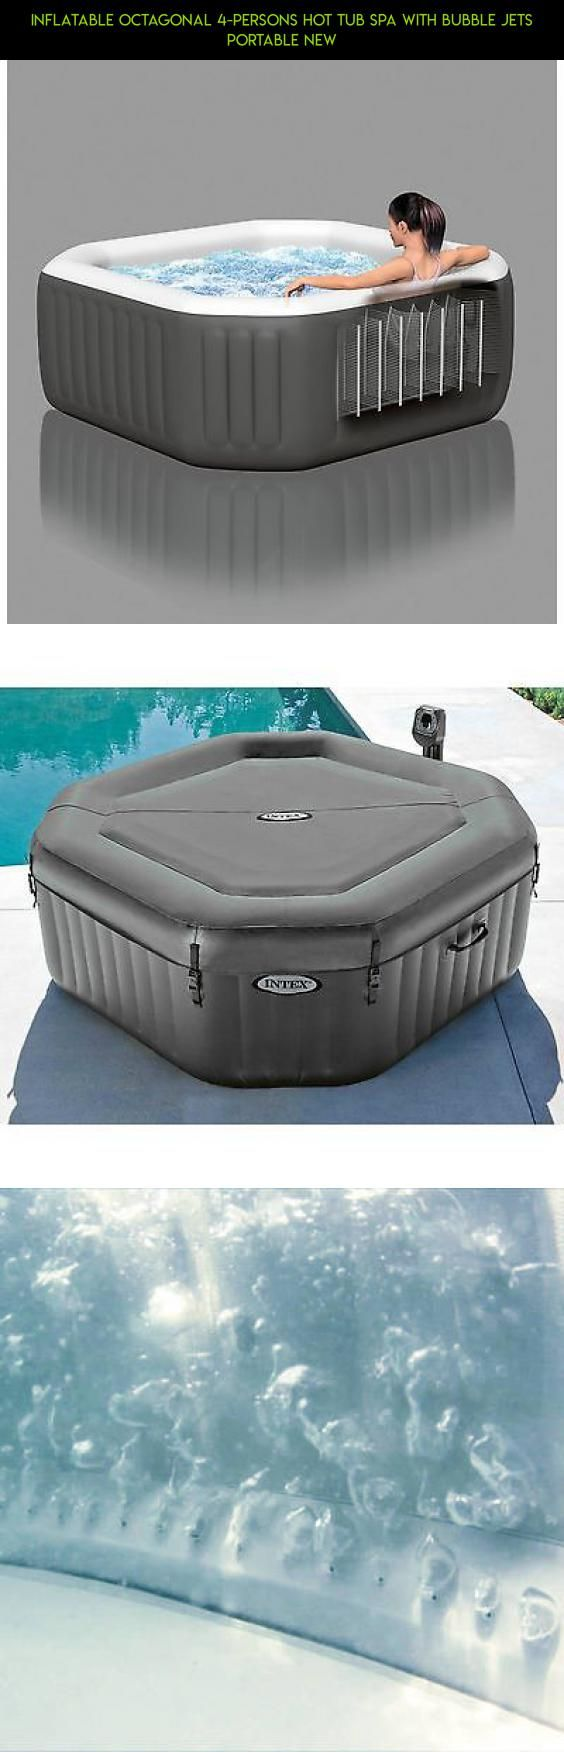 Inflatable Octagonal 4-Persons Hot Tub Spa with Bubble Jets Portable NEW #tech #parts #square #racing #plans #technology #kit #fpv #products #gadgets #drone #tubs #shopping #inflatable #hot #camera